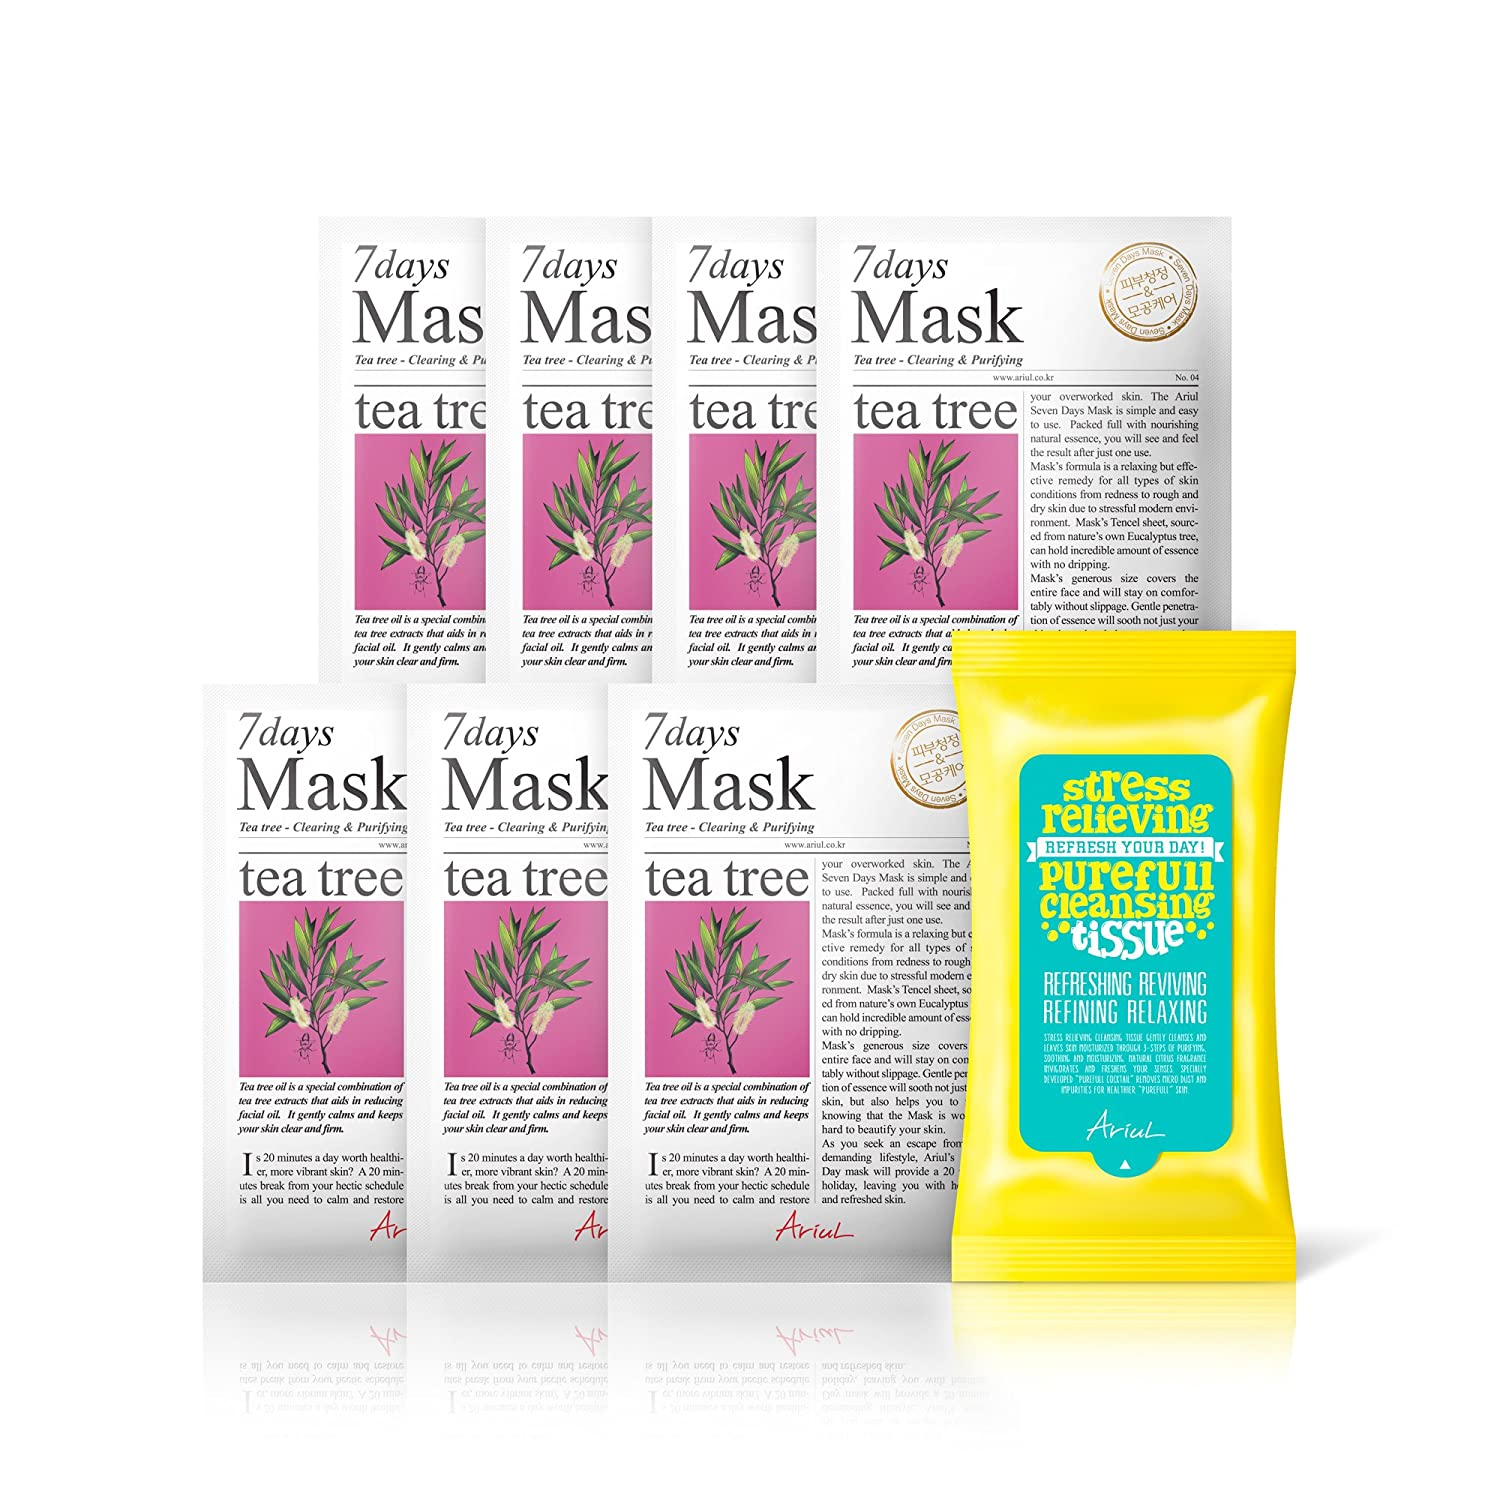 Ariul Natural Tea Tree Sheet Mask for Acne, Clearing & Purifying 7 Days Mask Multipack (7 Masks + 15 Free Wipes) Premium Facial Mask Pack, Calm & Soothe, Anti-viral, Antiseptic, Cures Dry Skin